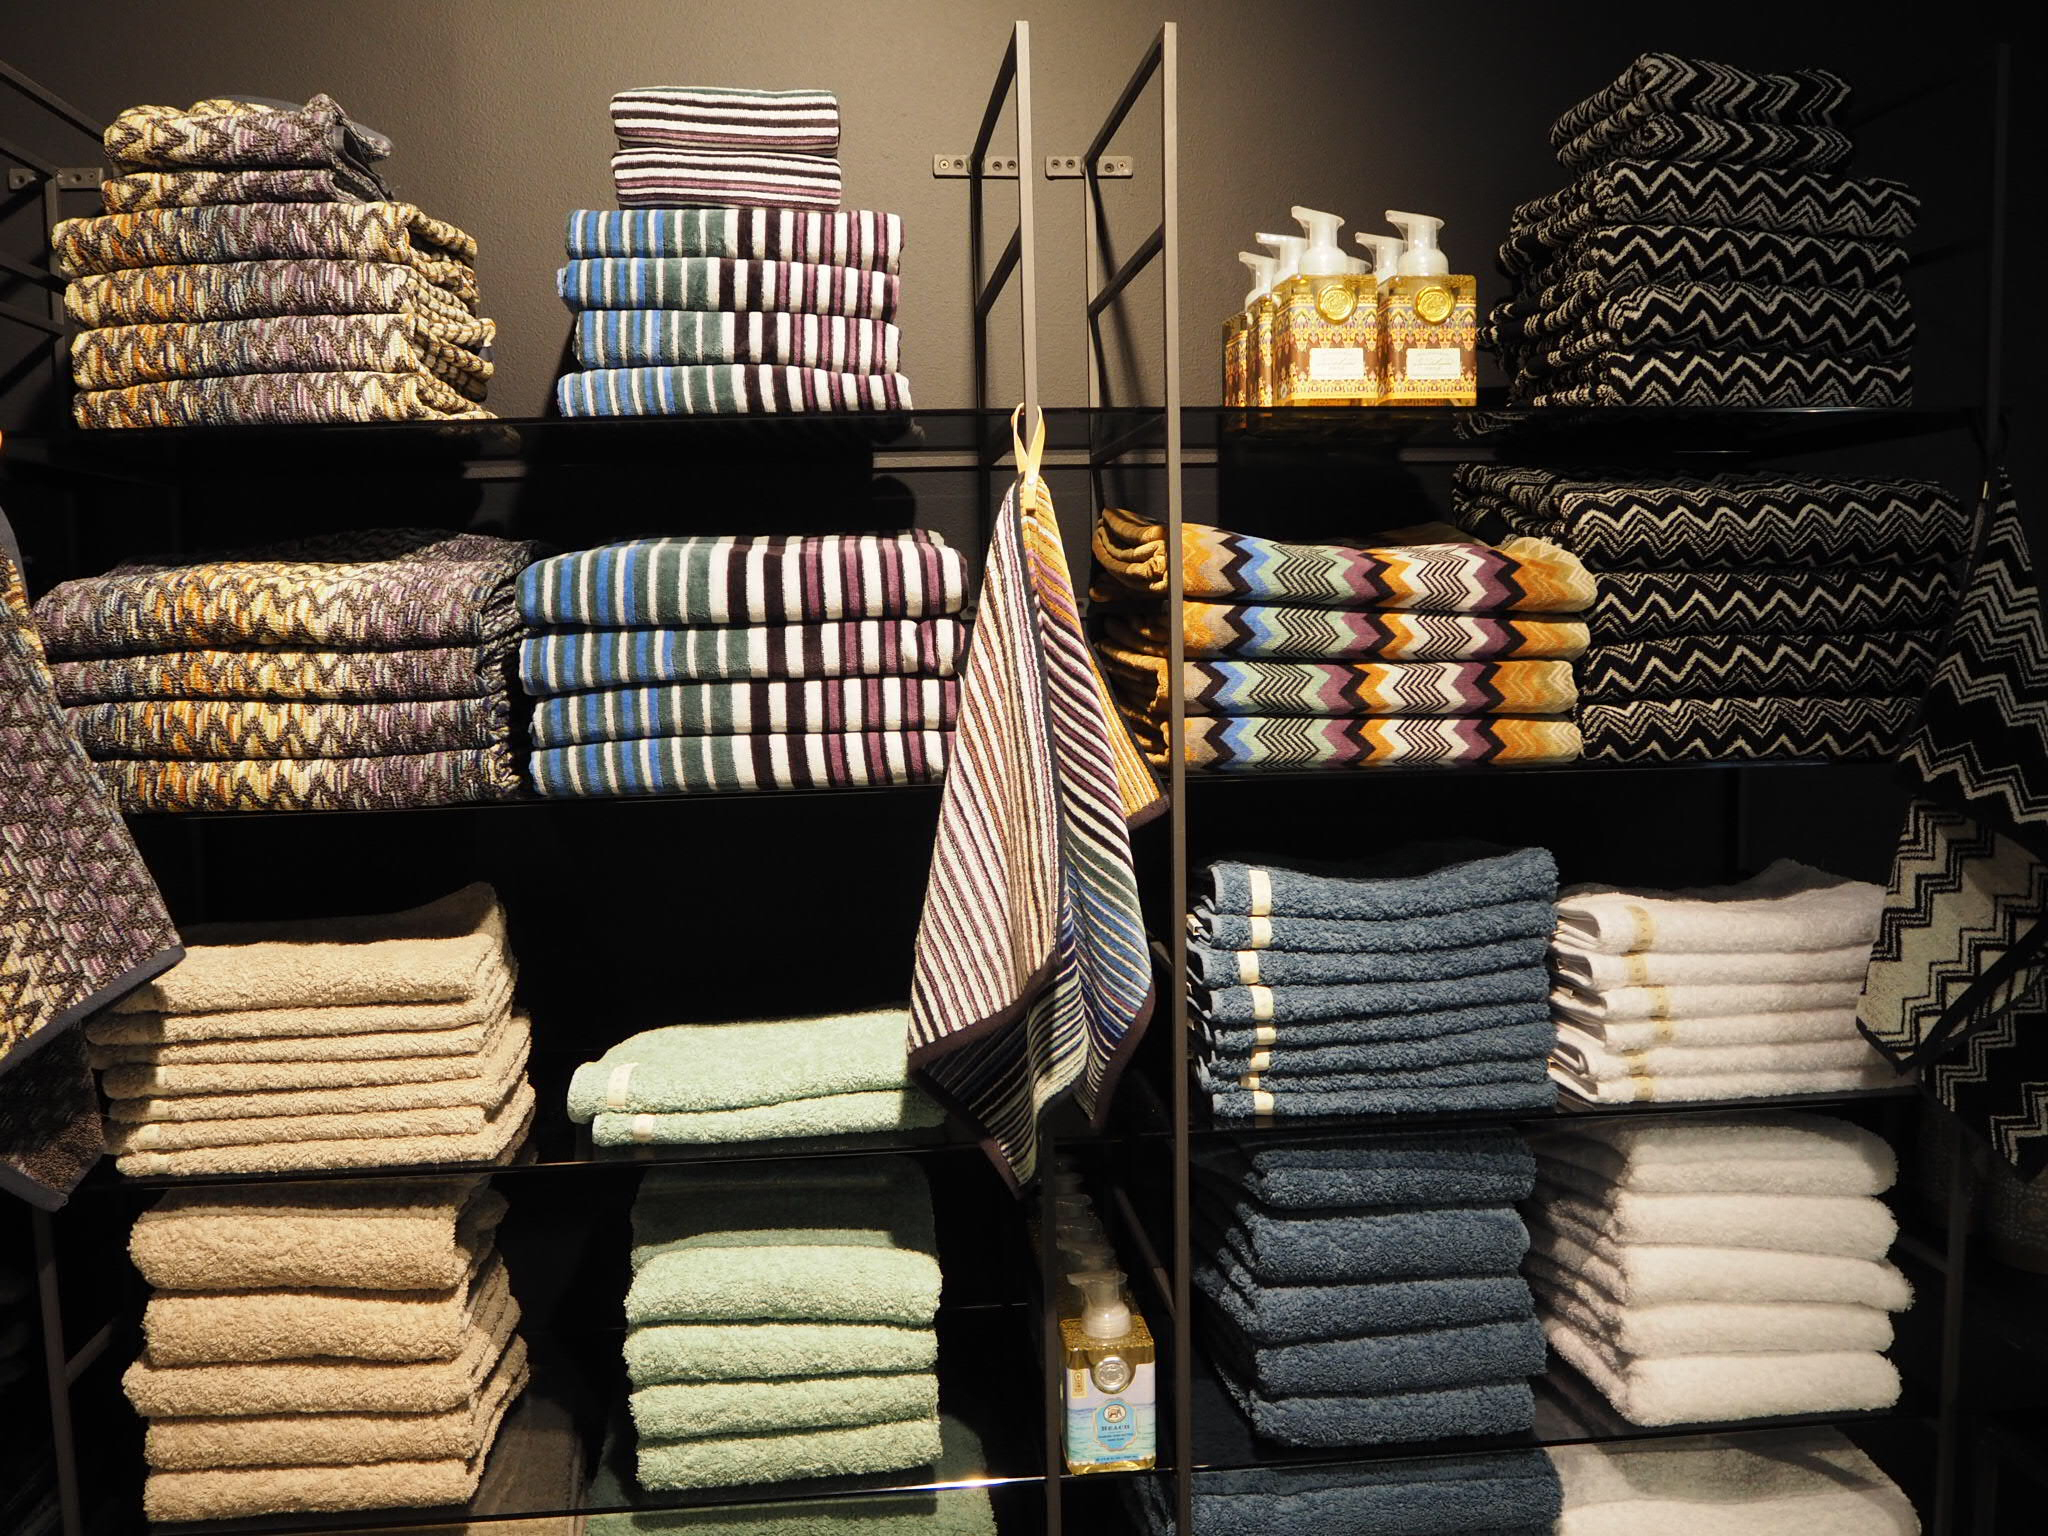 Fancy towels at Poshing living, Stockholm. Interiors/ homeware brand.